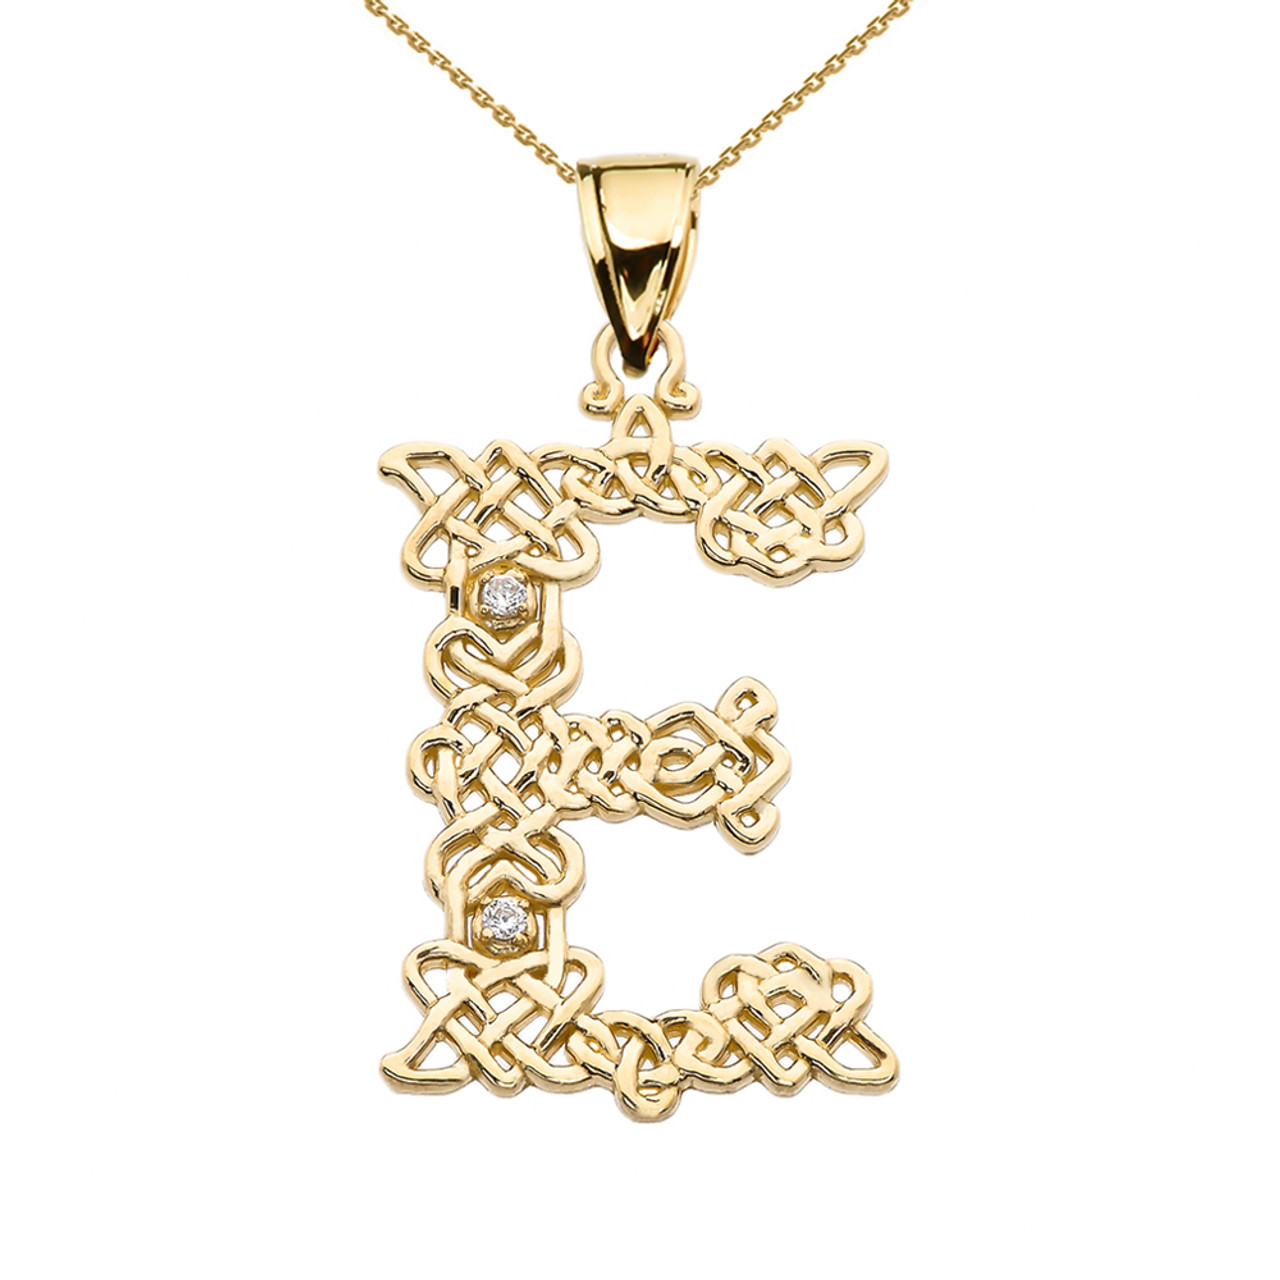 Diamond e initial in celtic pattern yellow gold pendant necklace e initial in celtic knot pattern yellow gold pendant necklace with diamond aloadofball Gallery